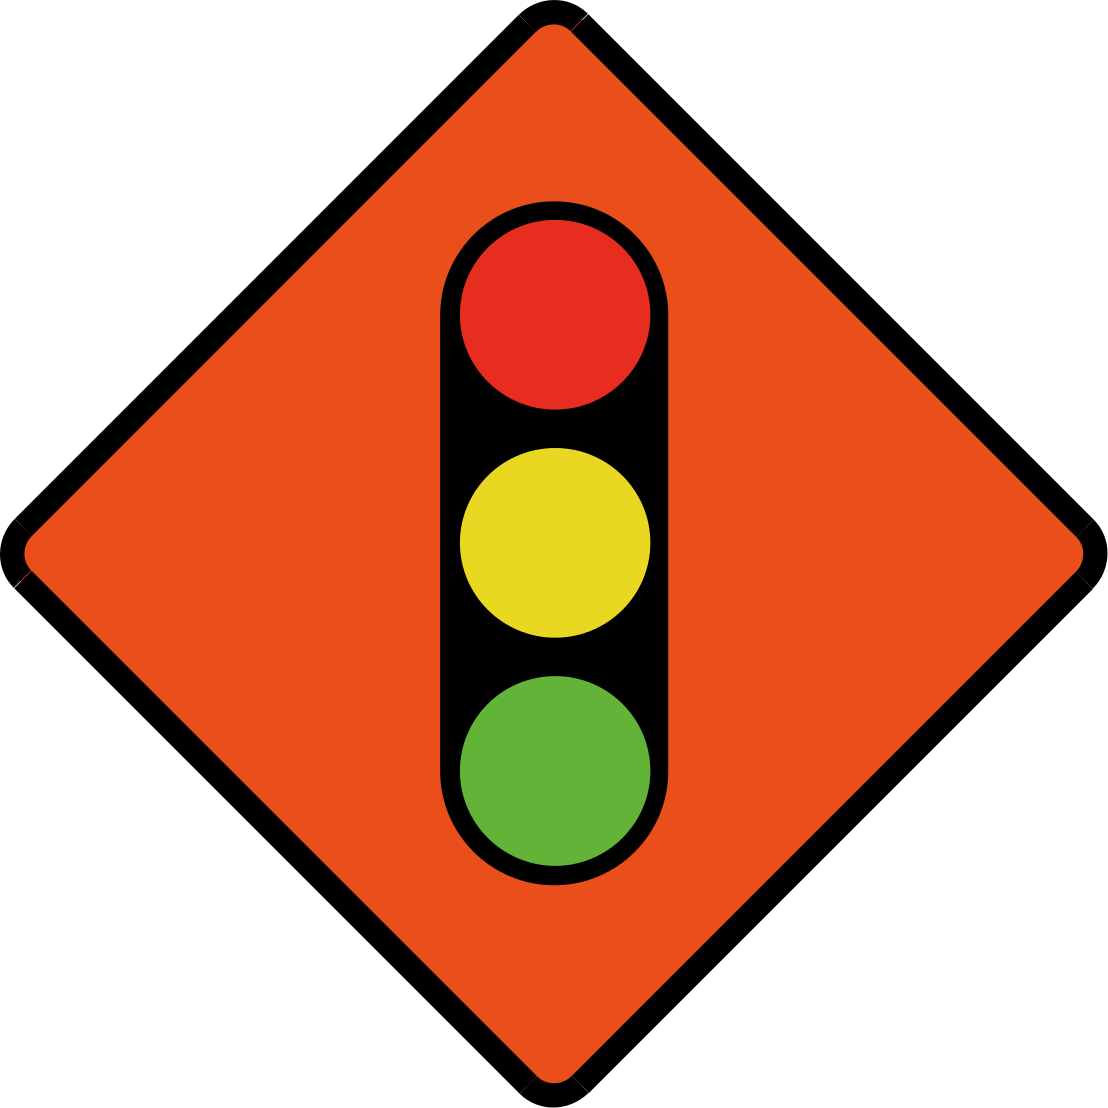 Traffic lights in use ahead